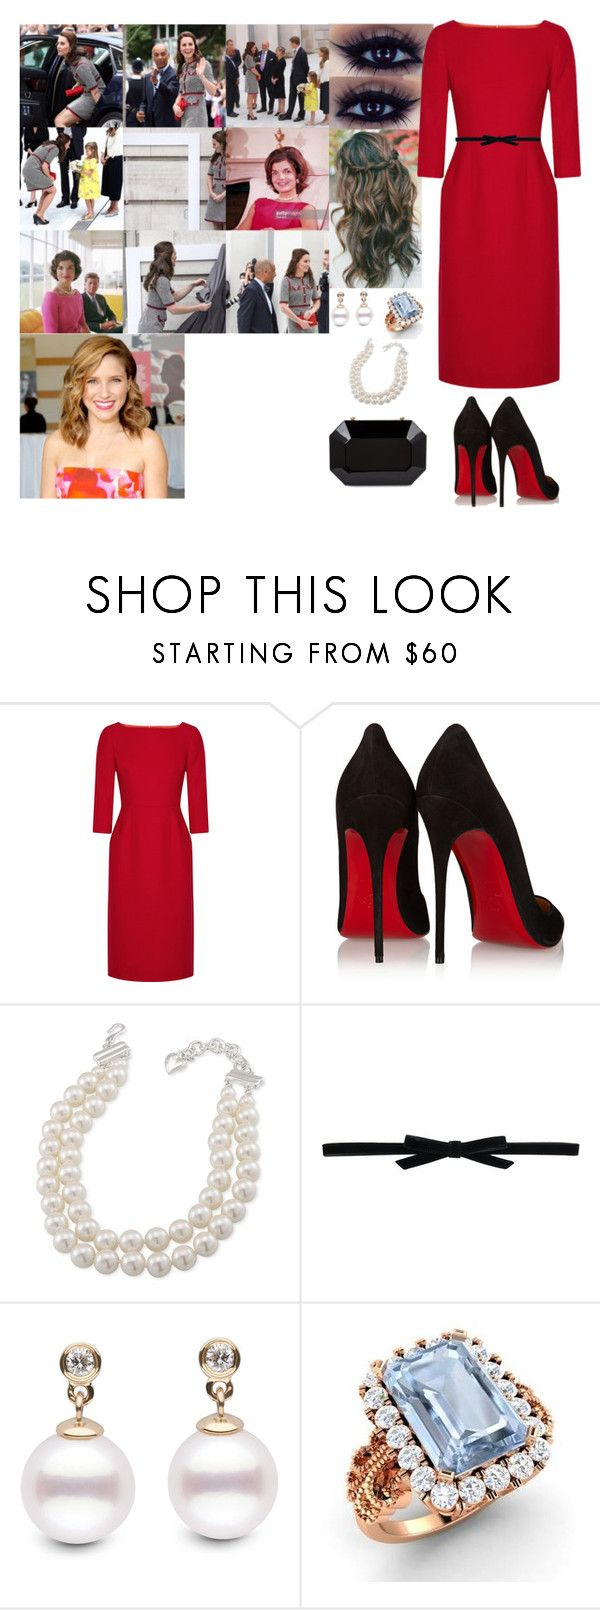 """""""Opening a New Wing at London's V&A to Open the New Exhibition Spaces"""" by adelaide-victoria ❤ liked on Polyvore featuring Goat, Christian Louboutin, Carolee, Philosophy di Lorenzo Serafini and Diamondere"""